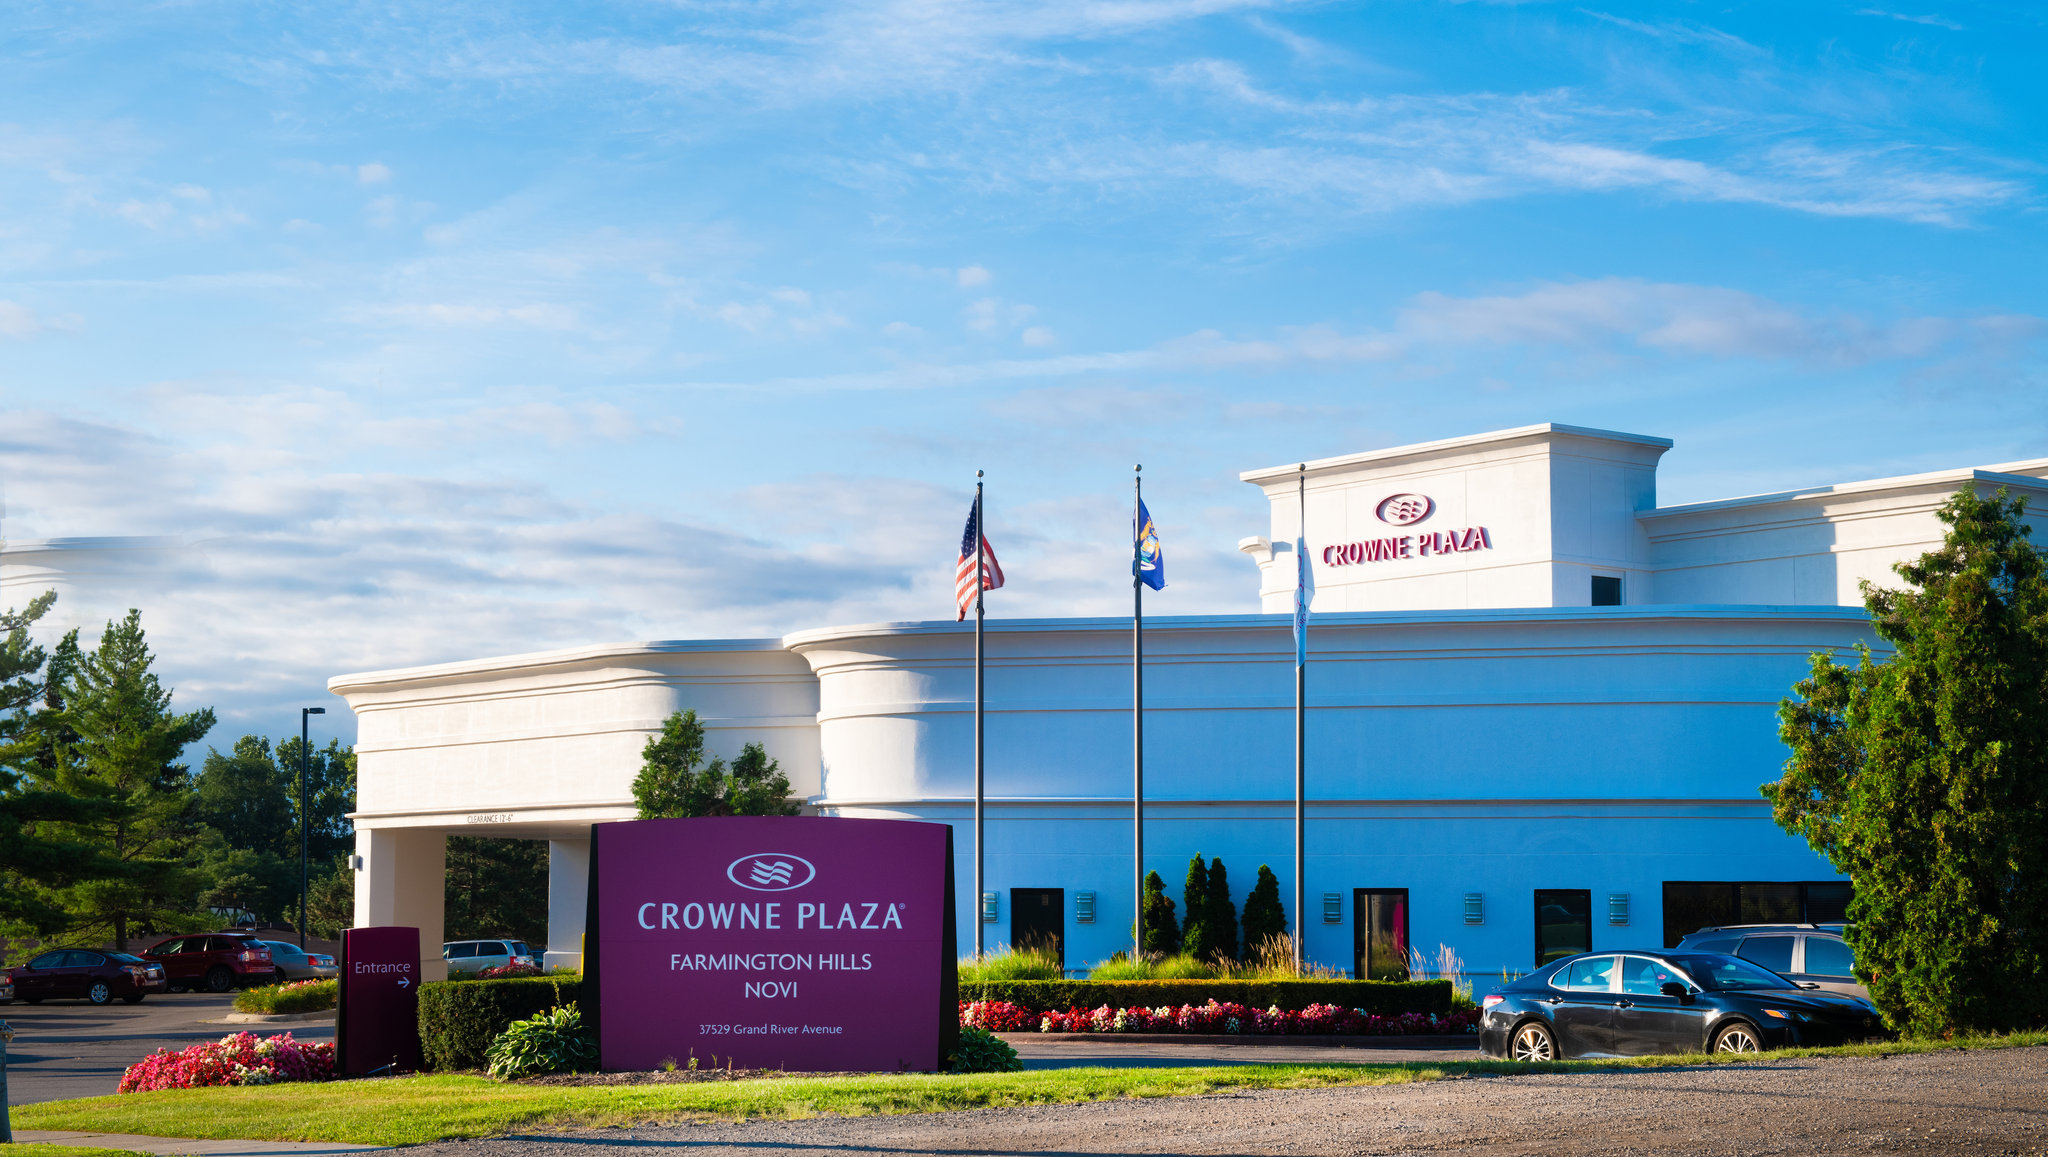 Crowne Plaza Farmington Hills-Novi